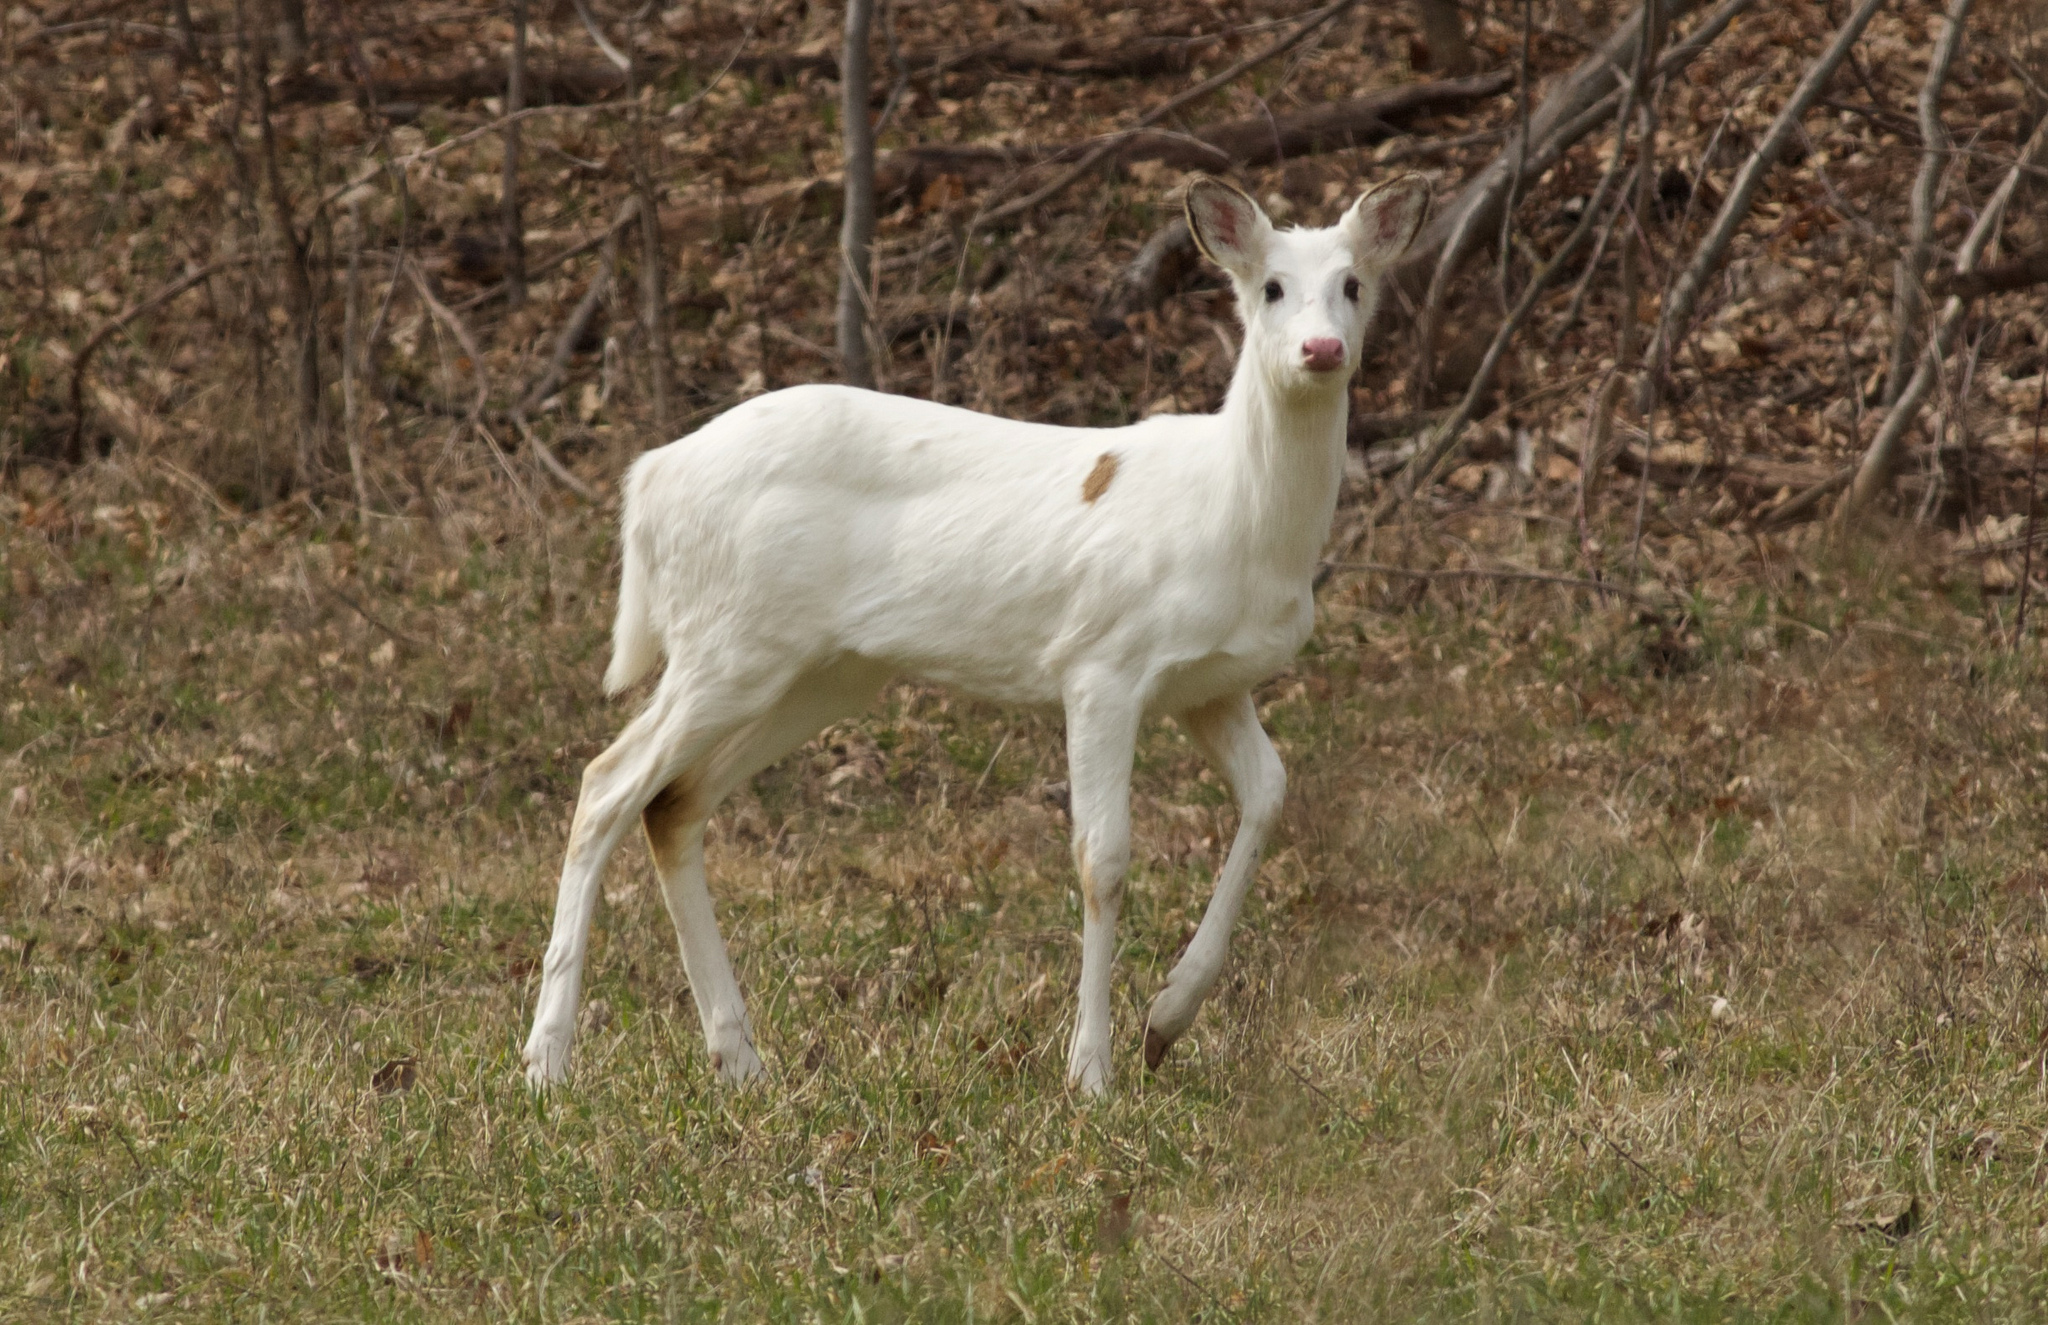 Trail camera photos give Wisconsin scientists a better idea of wildlife populations in the state (like the presence of this rare white deer in Sauk County). As a result, the WI DNR gains data for management purposes.  Photo by Arlene Koziol